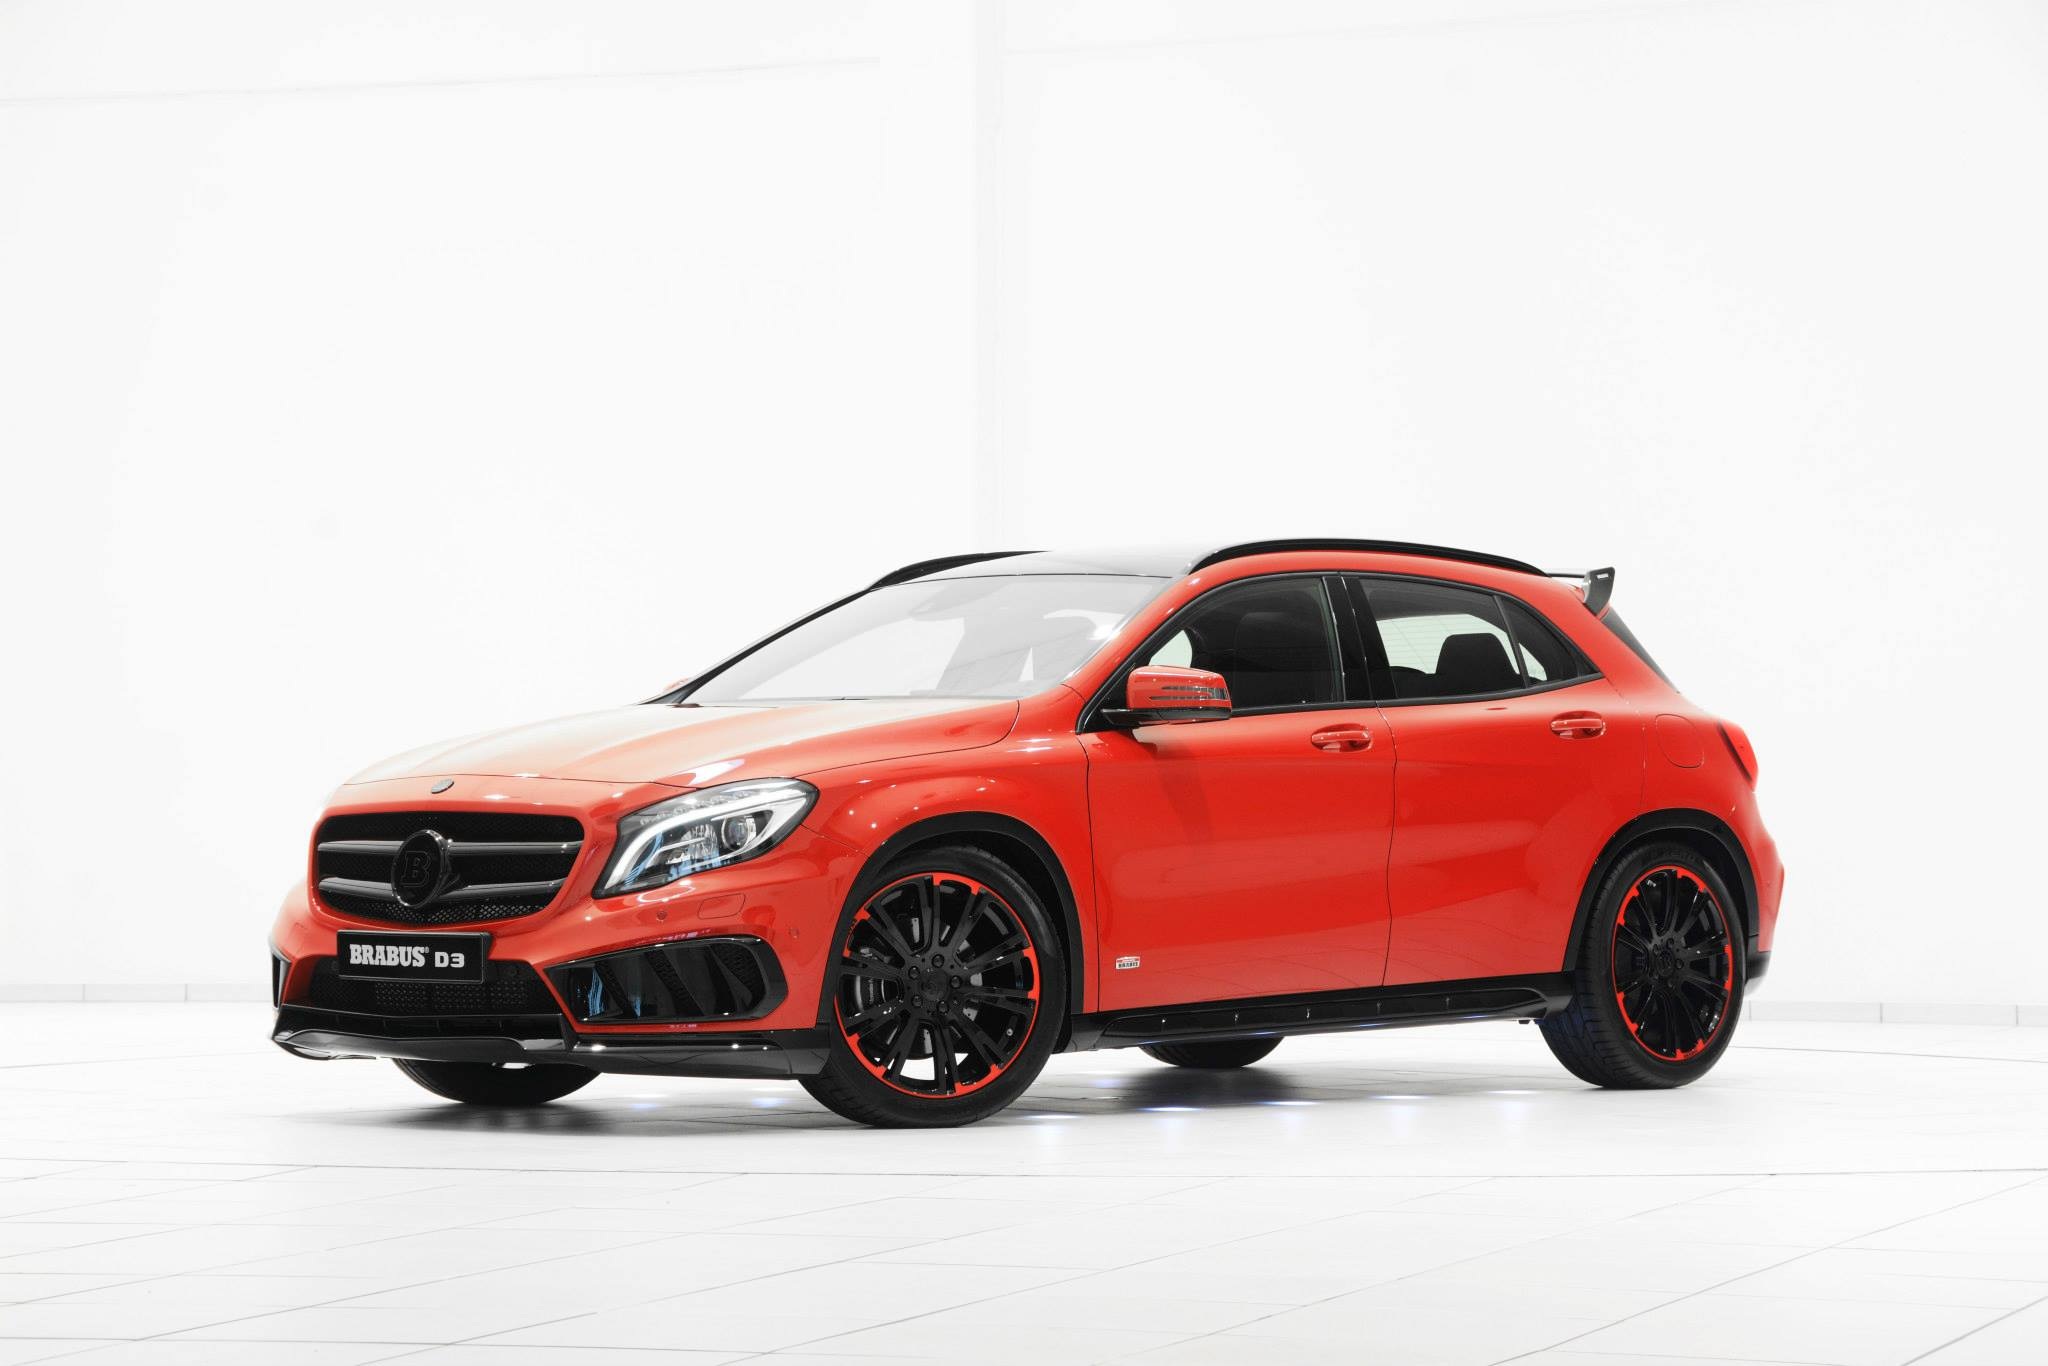 Latest brabus mercedes benz gla kit revealed gtspirit for The newest mercedes benz